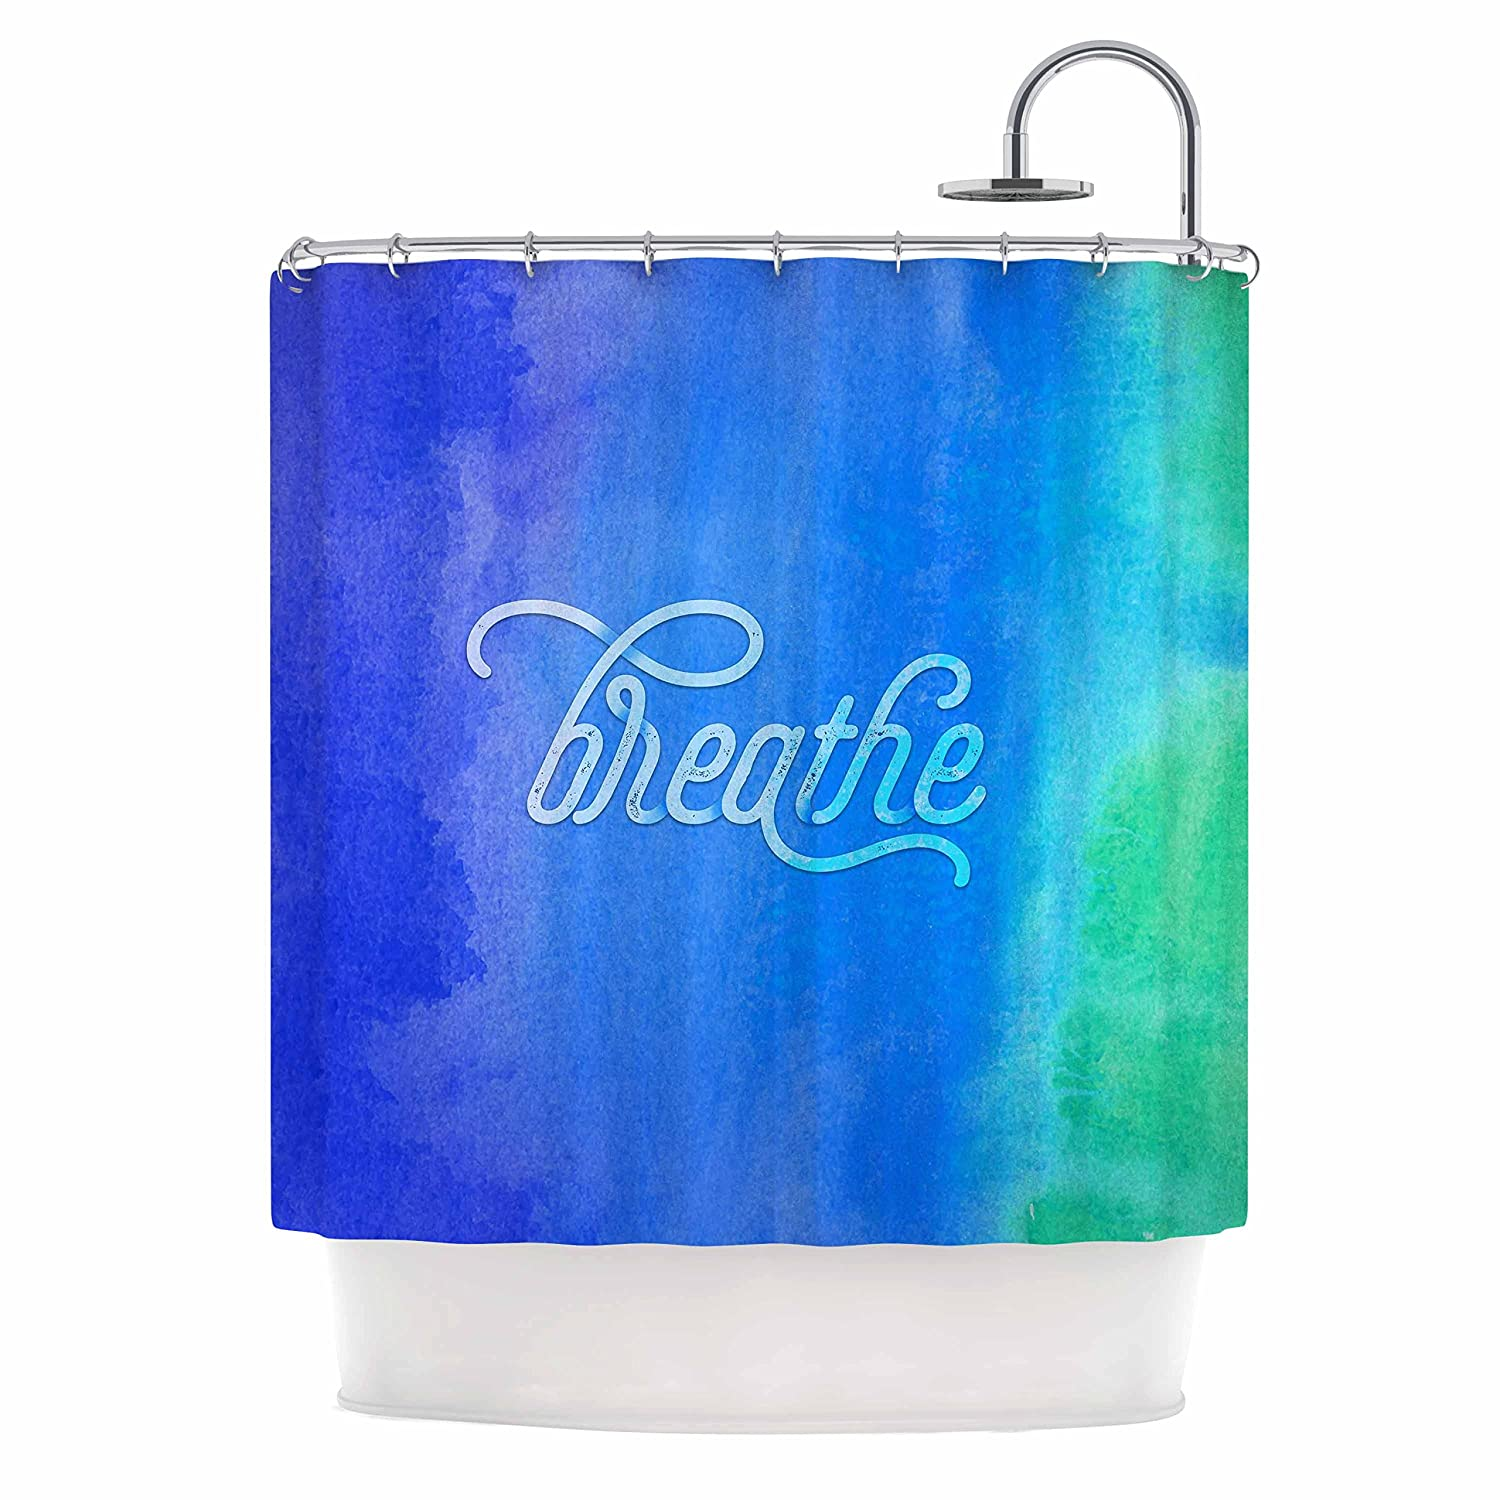 Kess InHouse Noonday Design Breathe Blue Green Shower Curtain, 69 by 70'